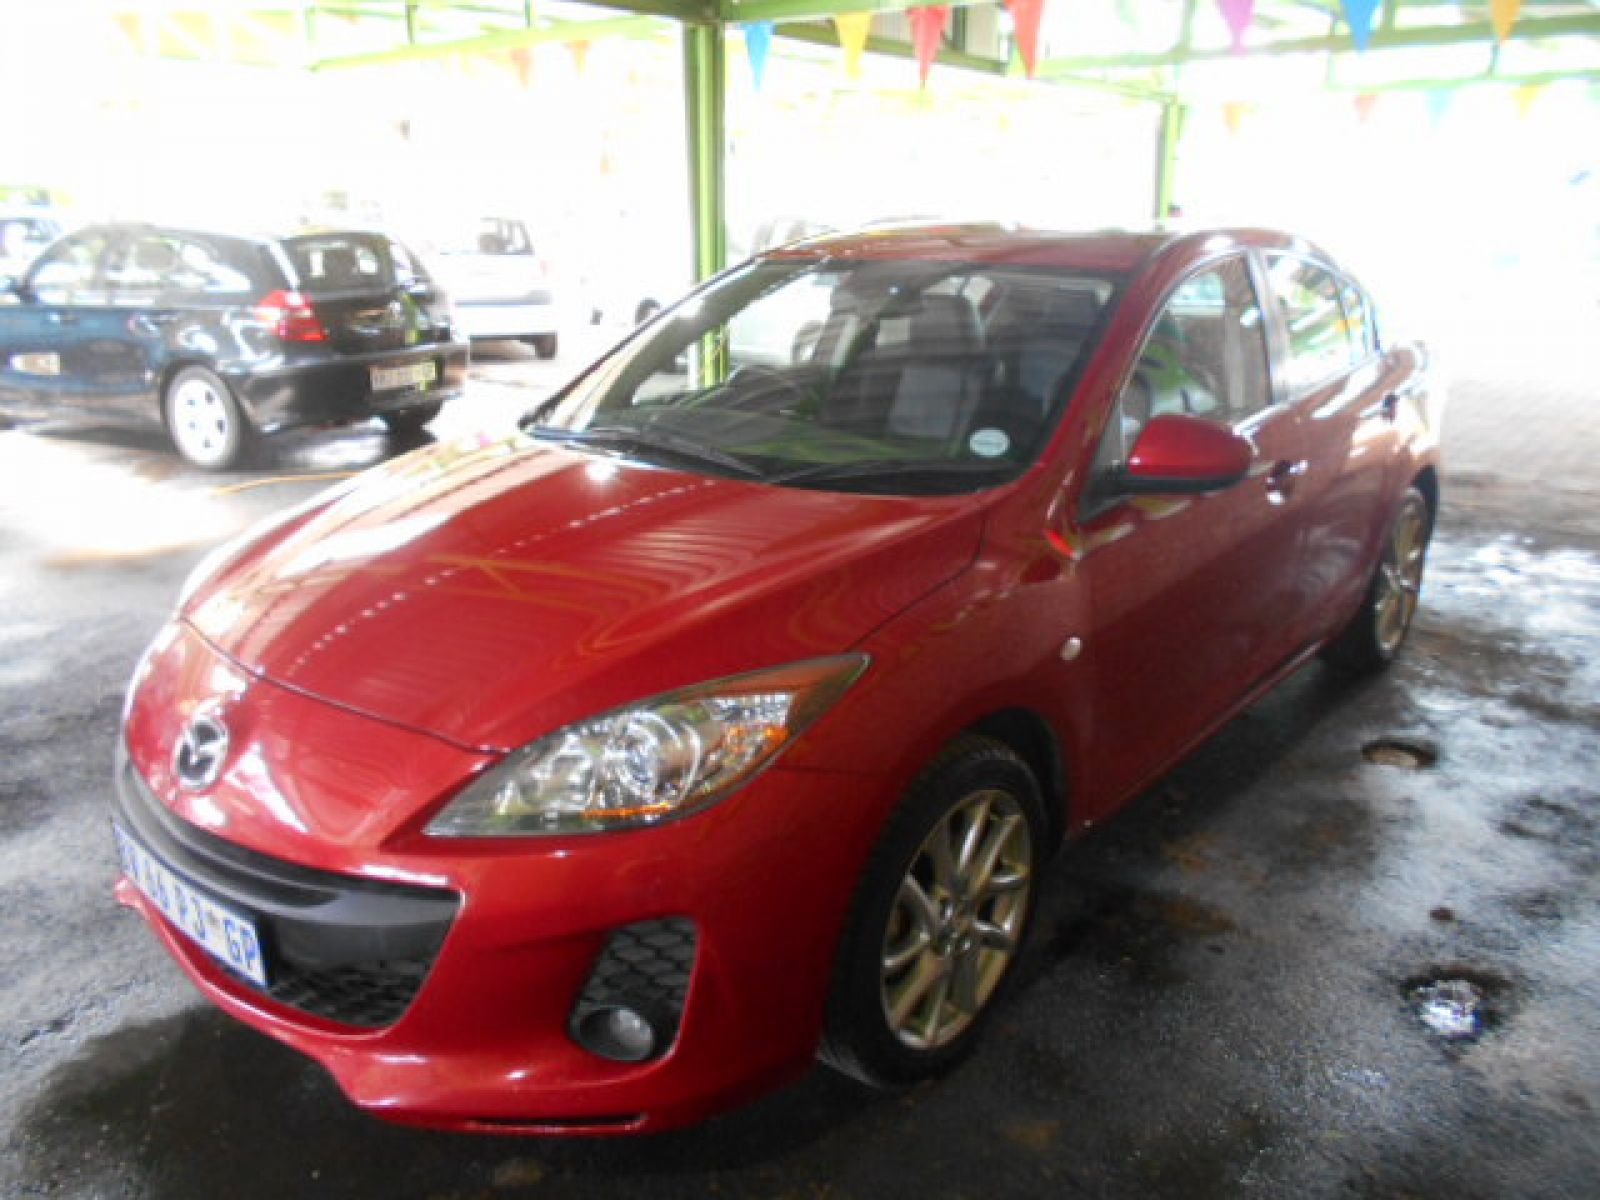 2012 mazda 3 r 149 990 for sale kilokor motors. Black Bedroom Furniture Sets. Home Design Ideas